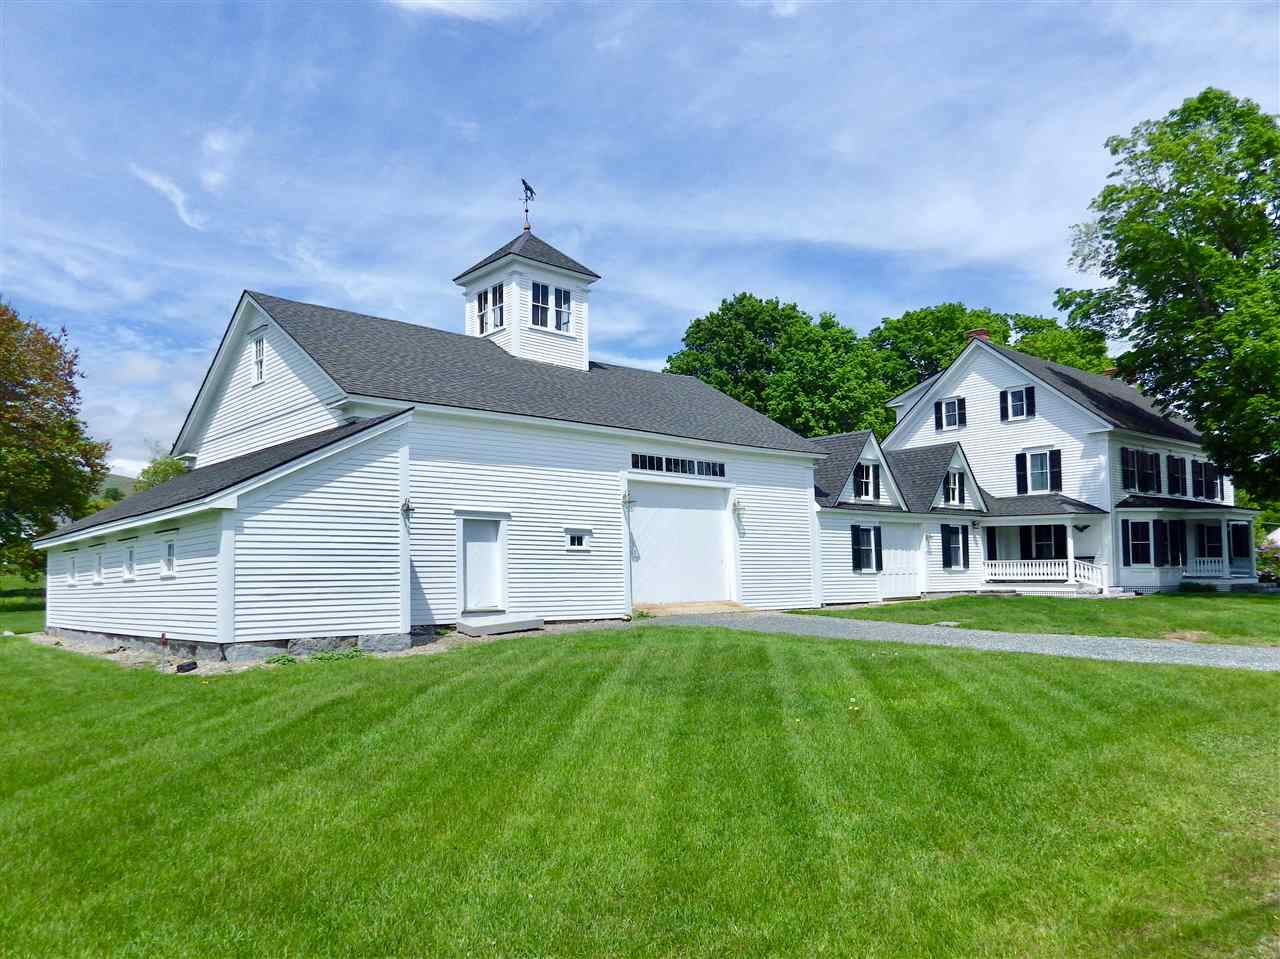 VILLAGE OF MELVIN VILLAGE IN TOWN OF TUFTONBORO NH Home for sale $675,000